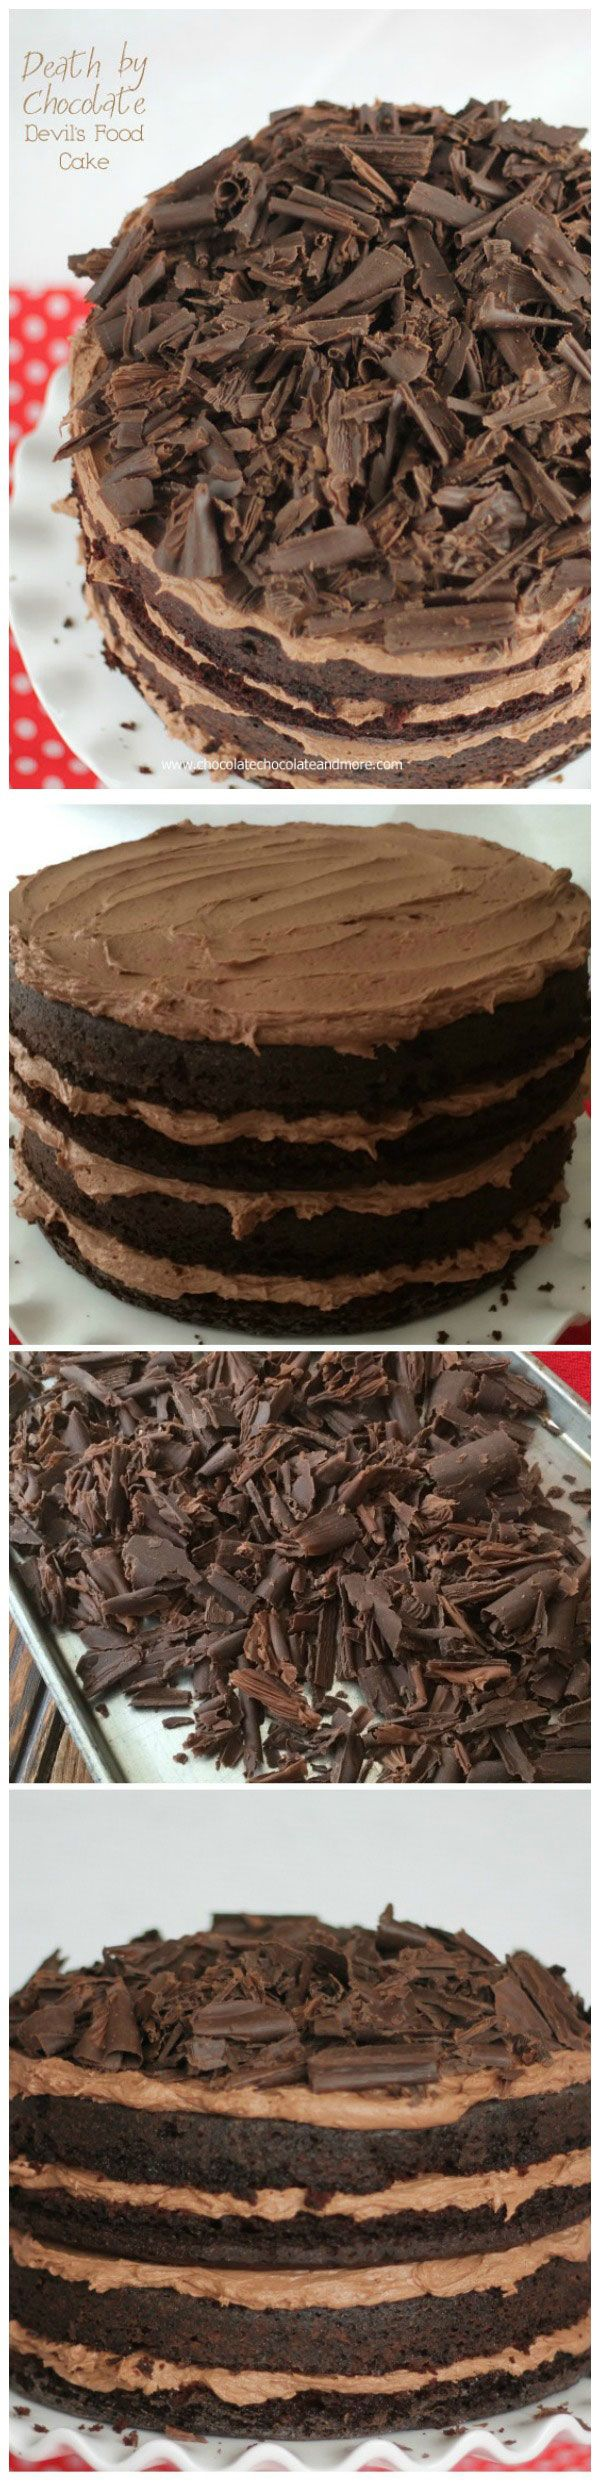 Death by Chocolate-Layers of Devil's Food Cake divided by rich Chocolate Buttercream then topped with chocolate curls